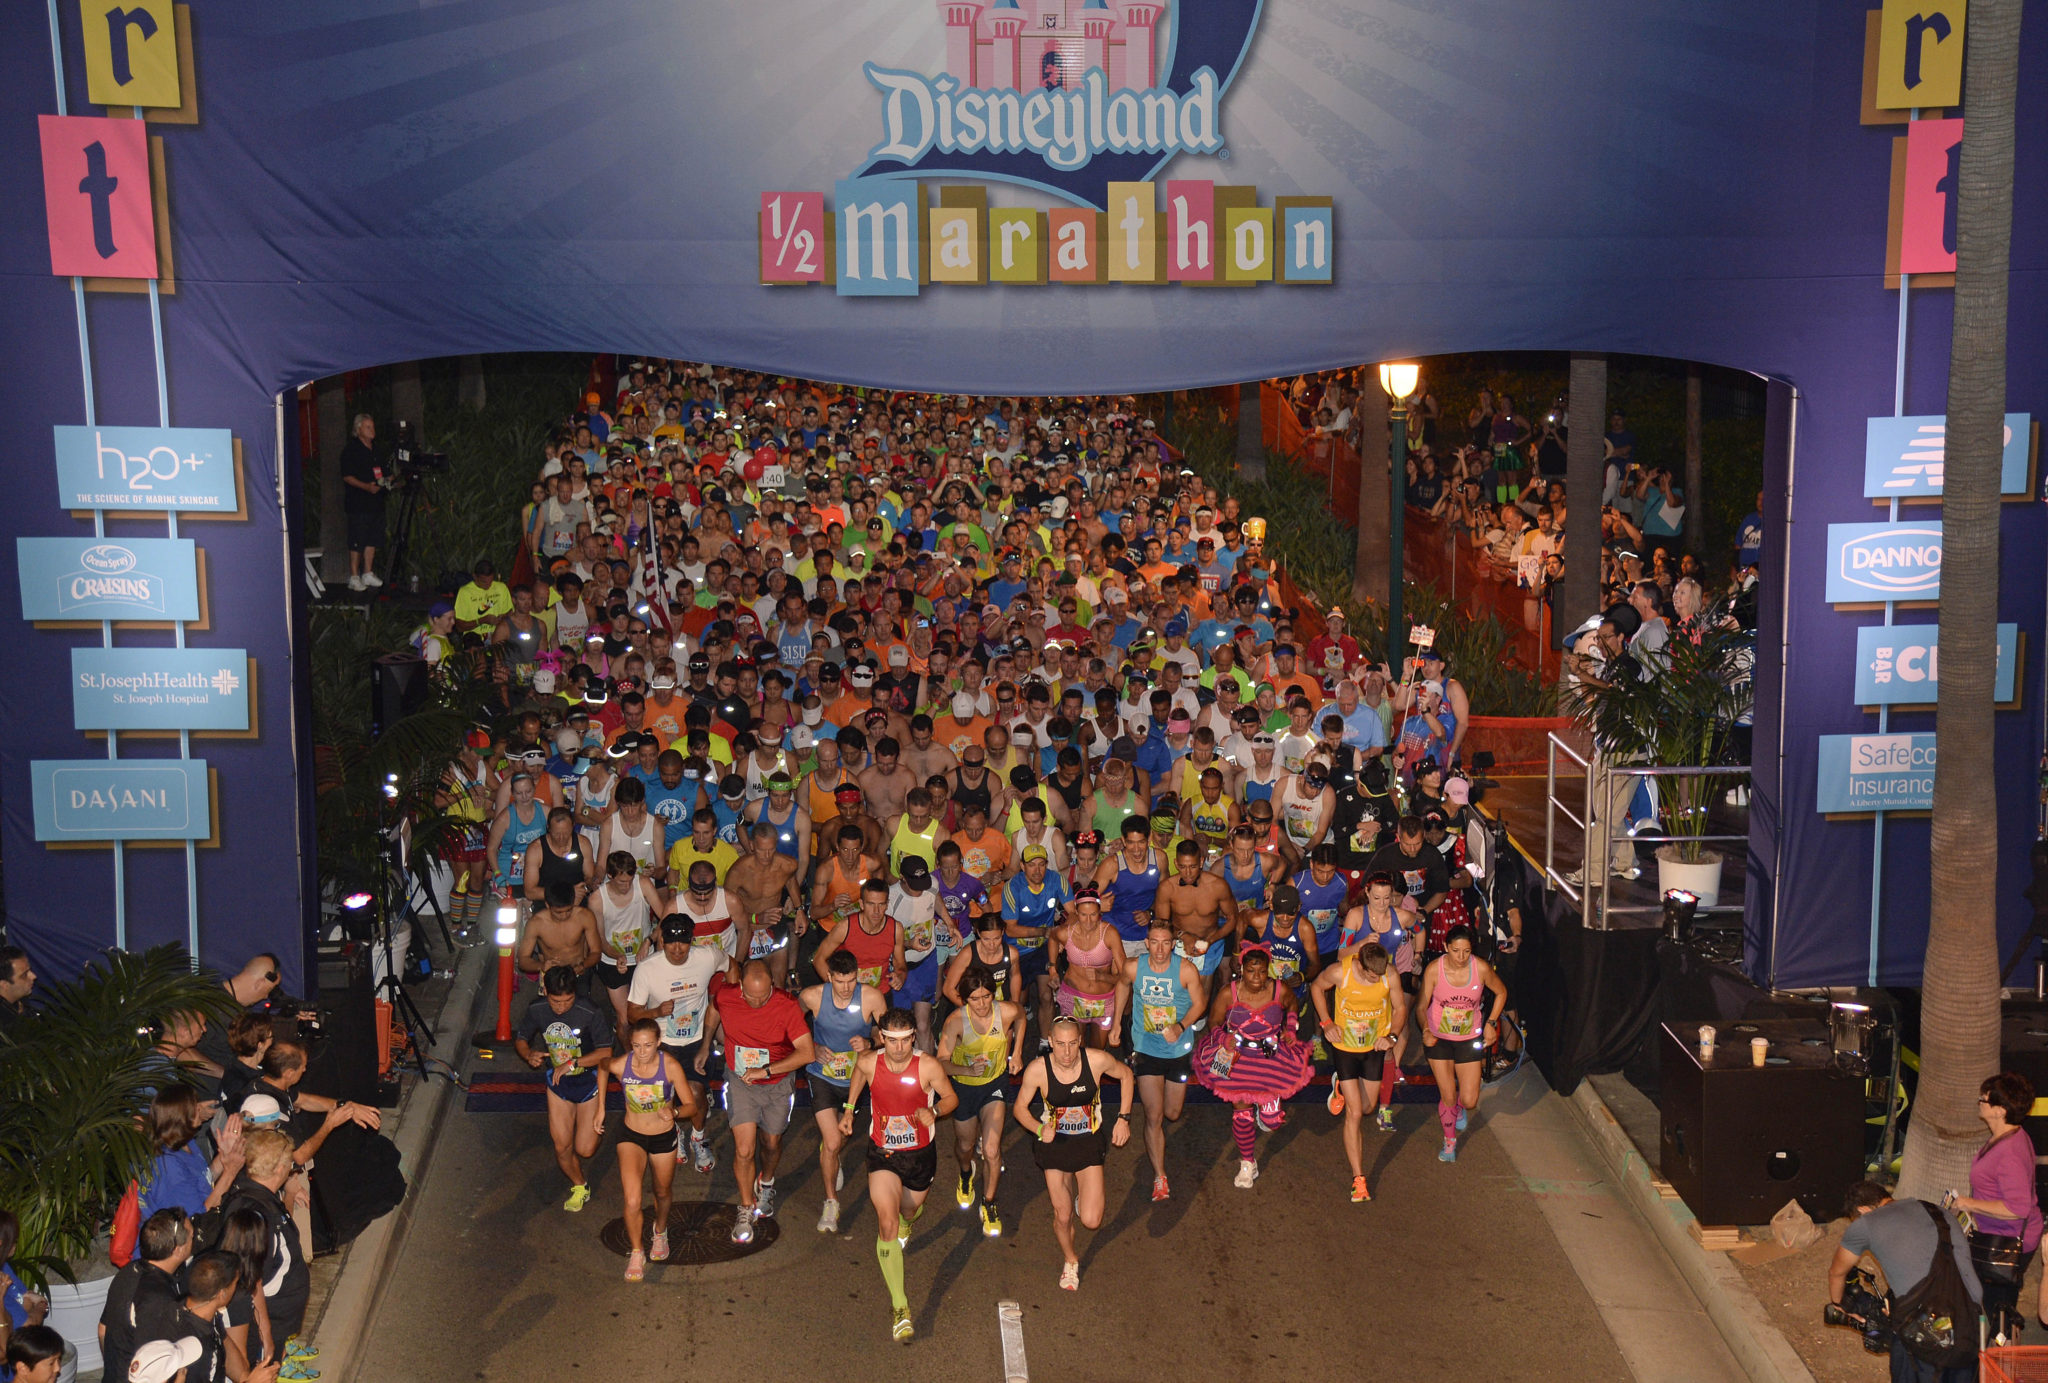 Disneyland Half Marathon Starting Line. Photo credit: Laughing Place.